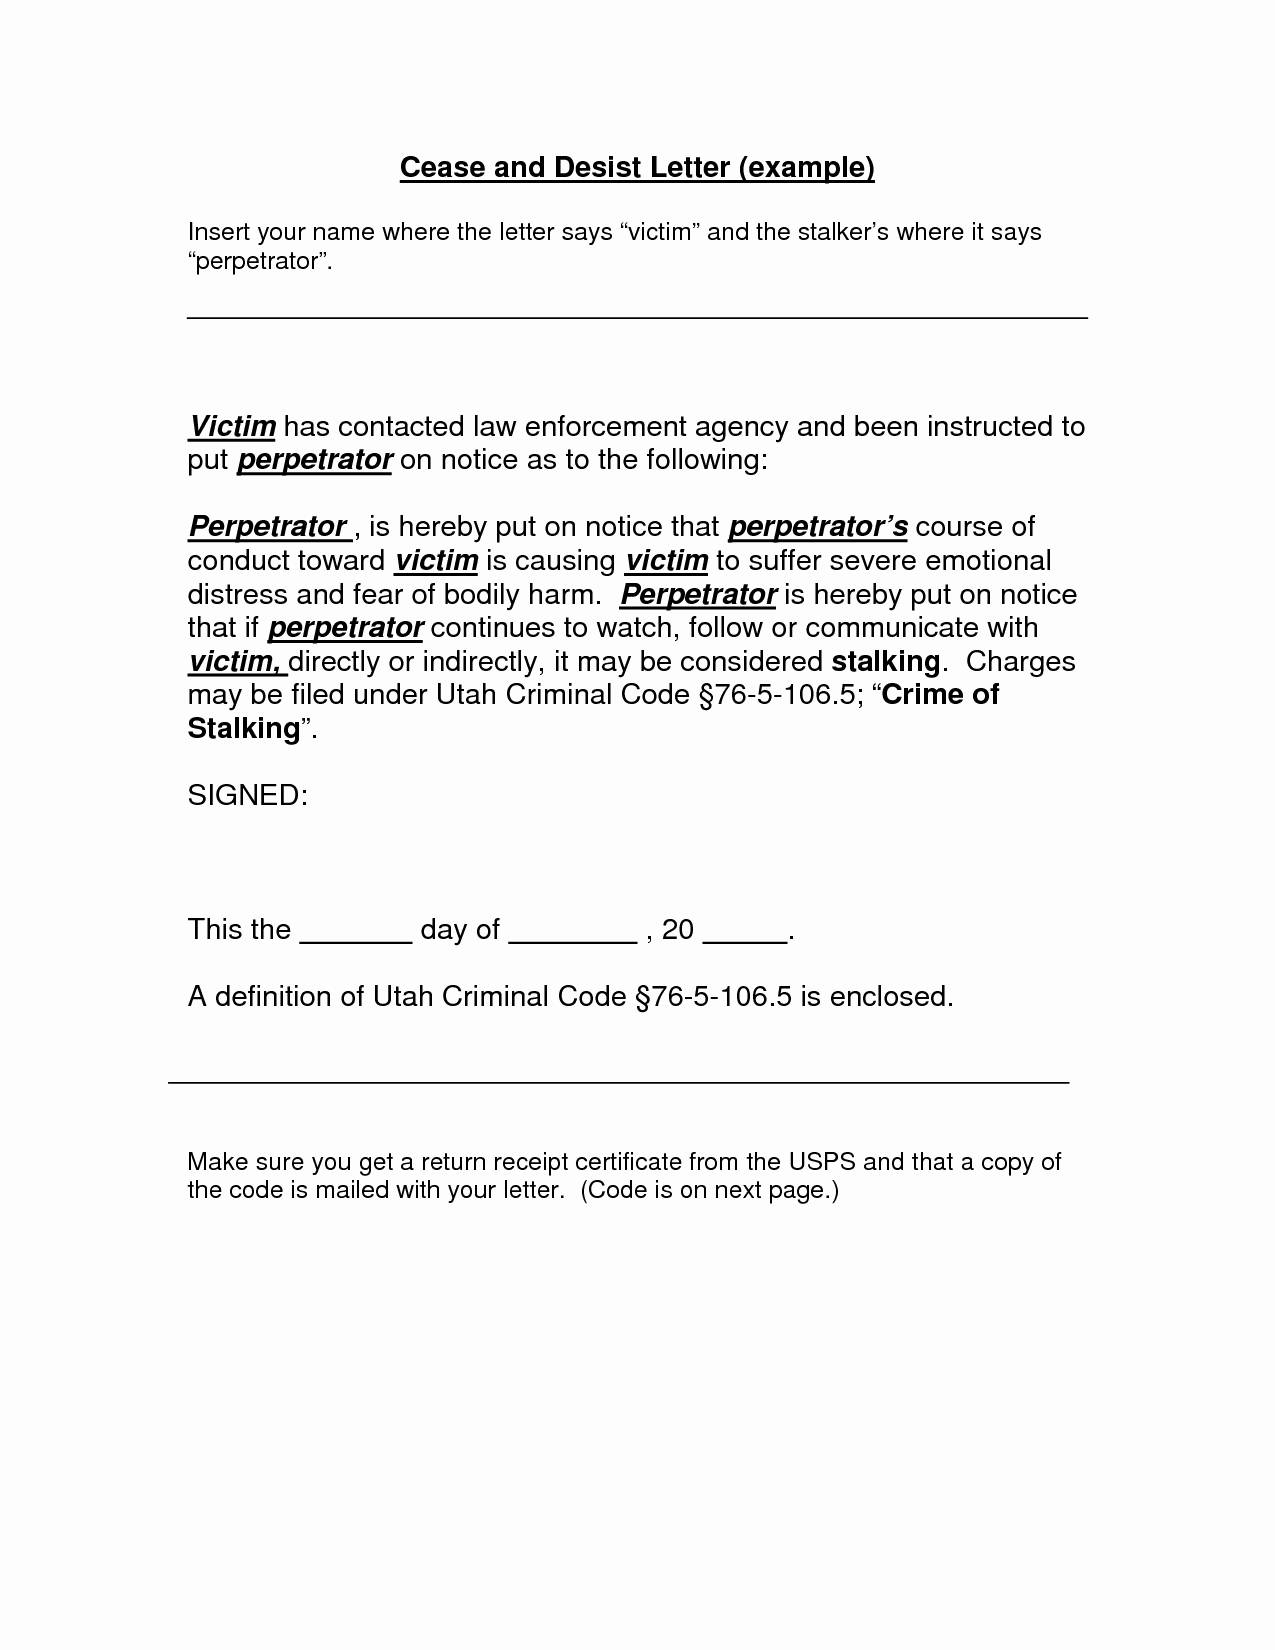 Cease and Desist Collection Letter Template - Cease and Desist Letter Template for Debt Collectors Inspirational